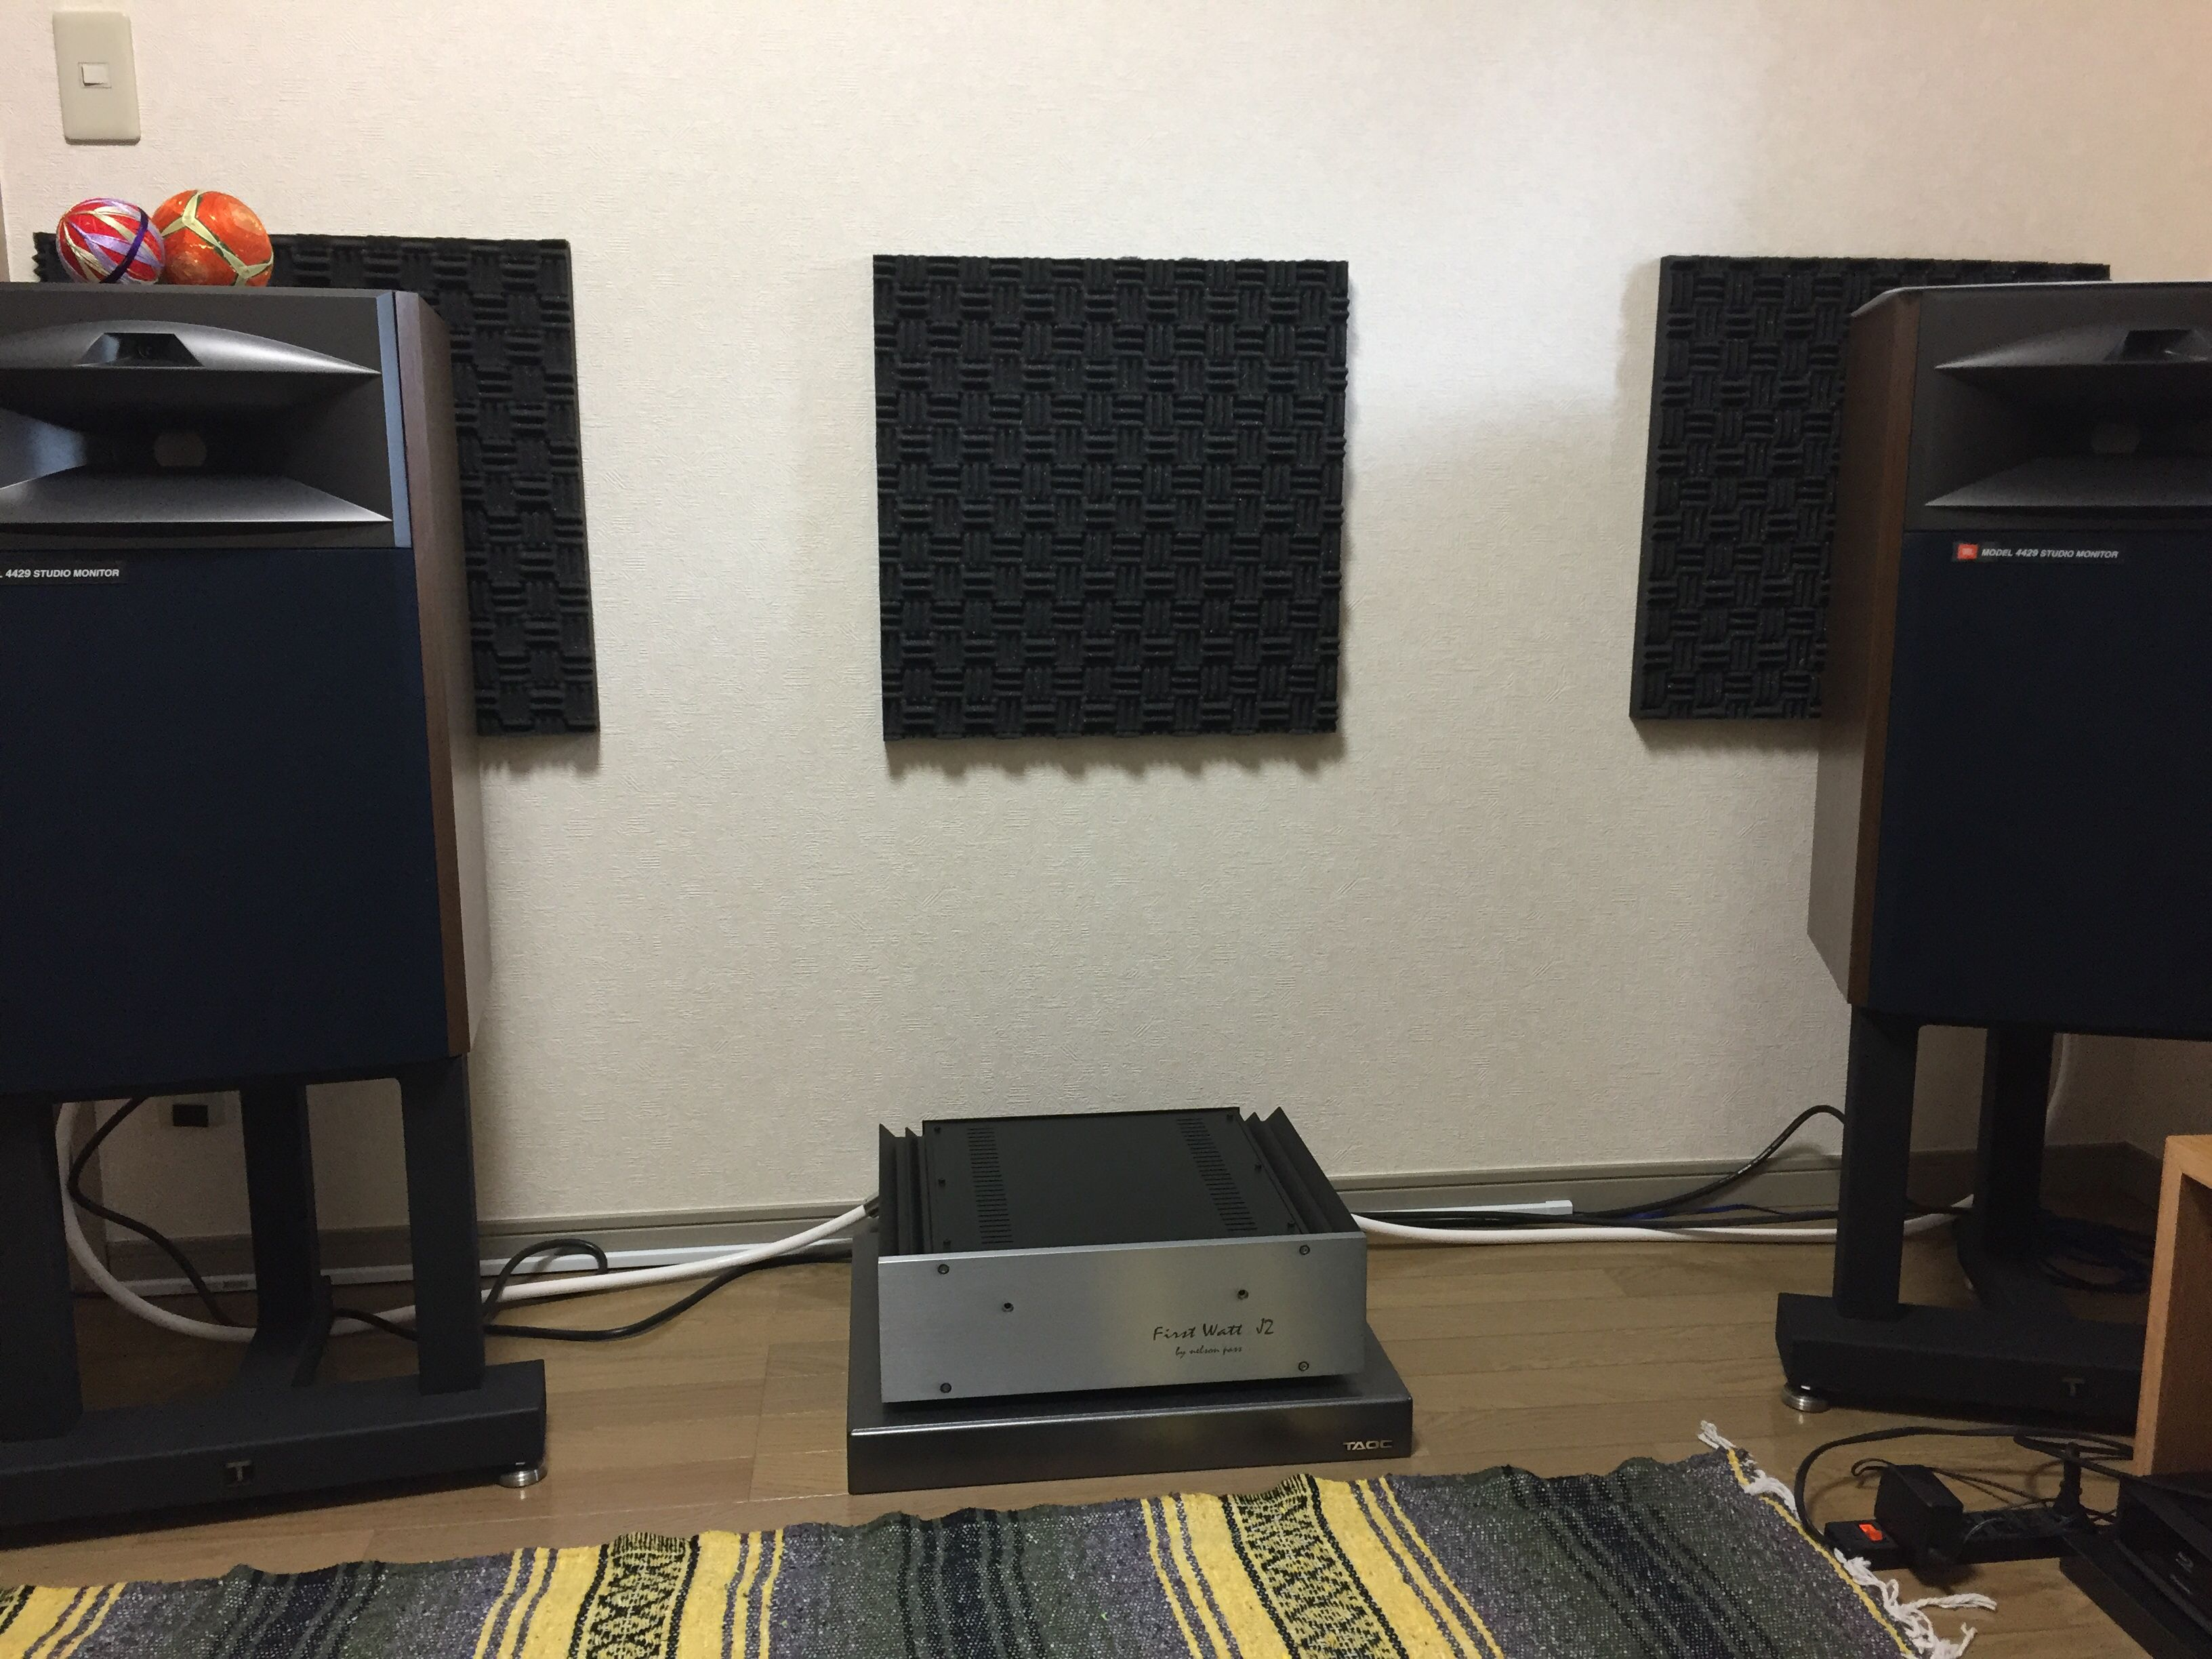 JBL & Firstwatt J2 | My audio system